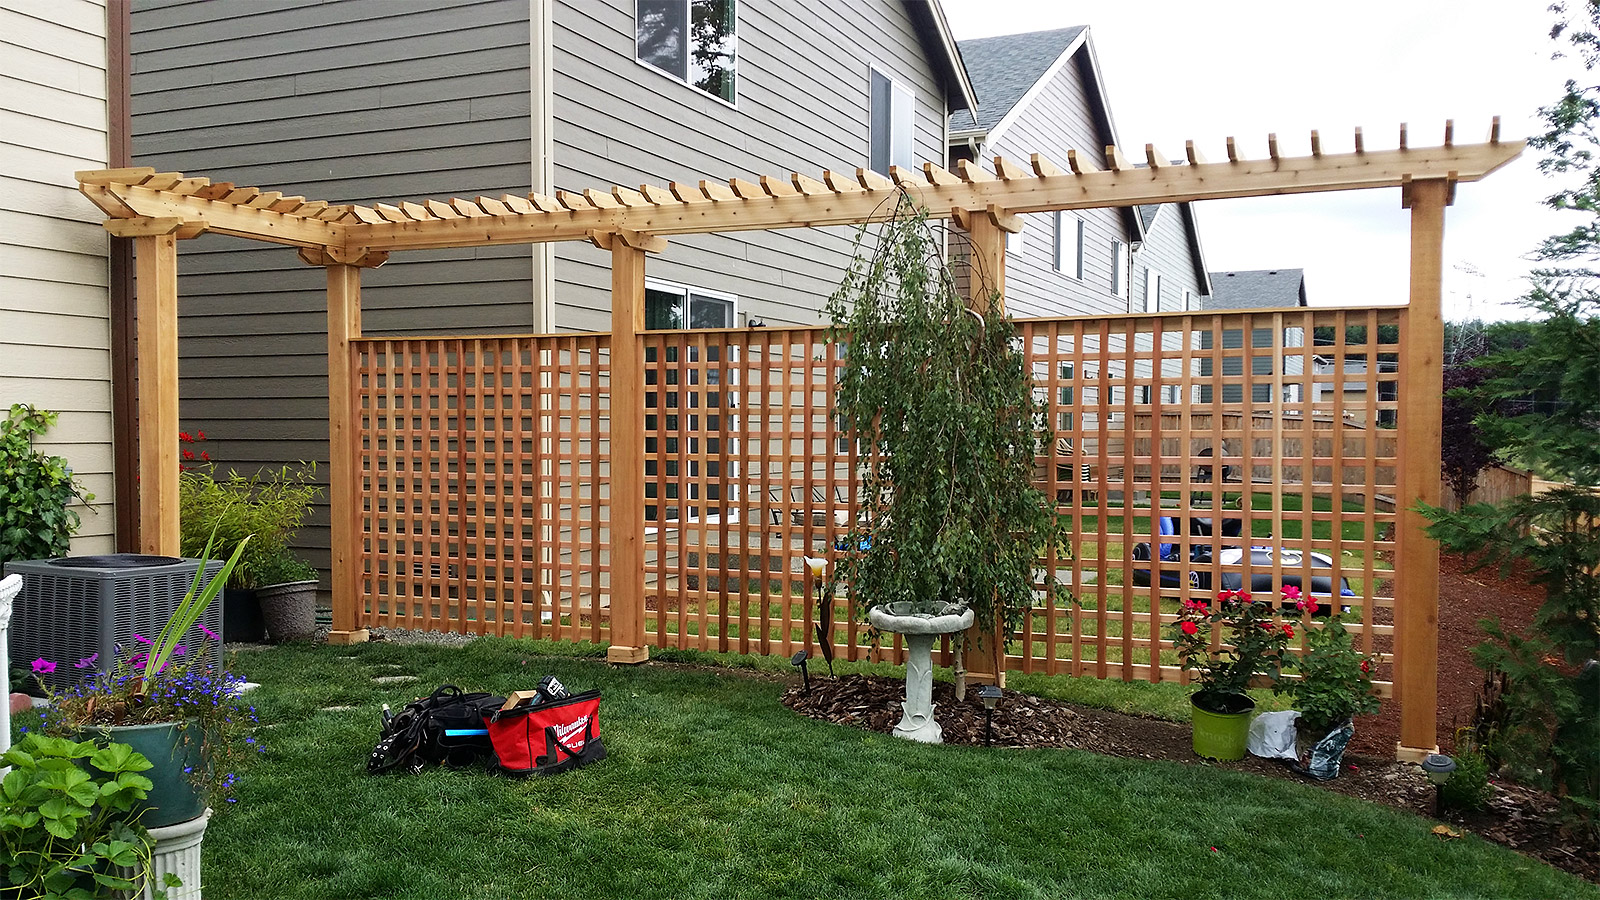 Grid Style Cedar Fence with Trellis Above